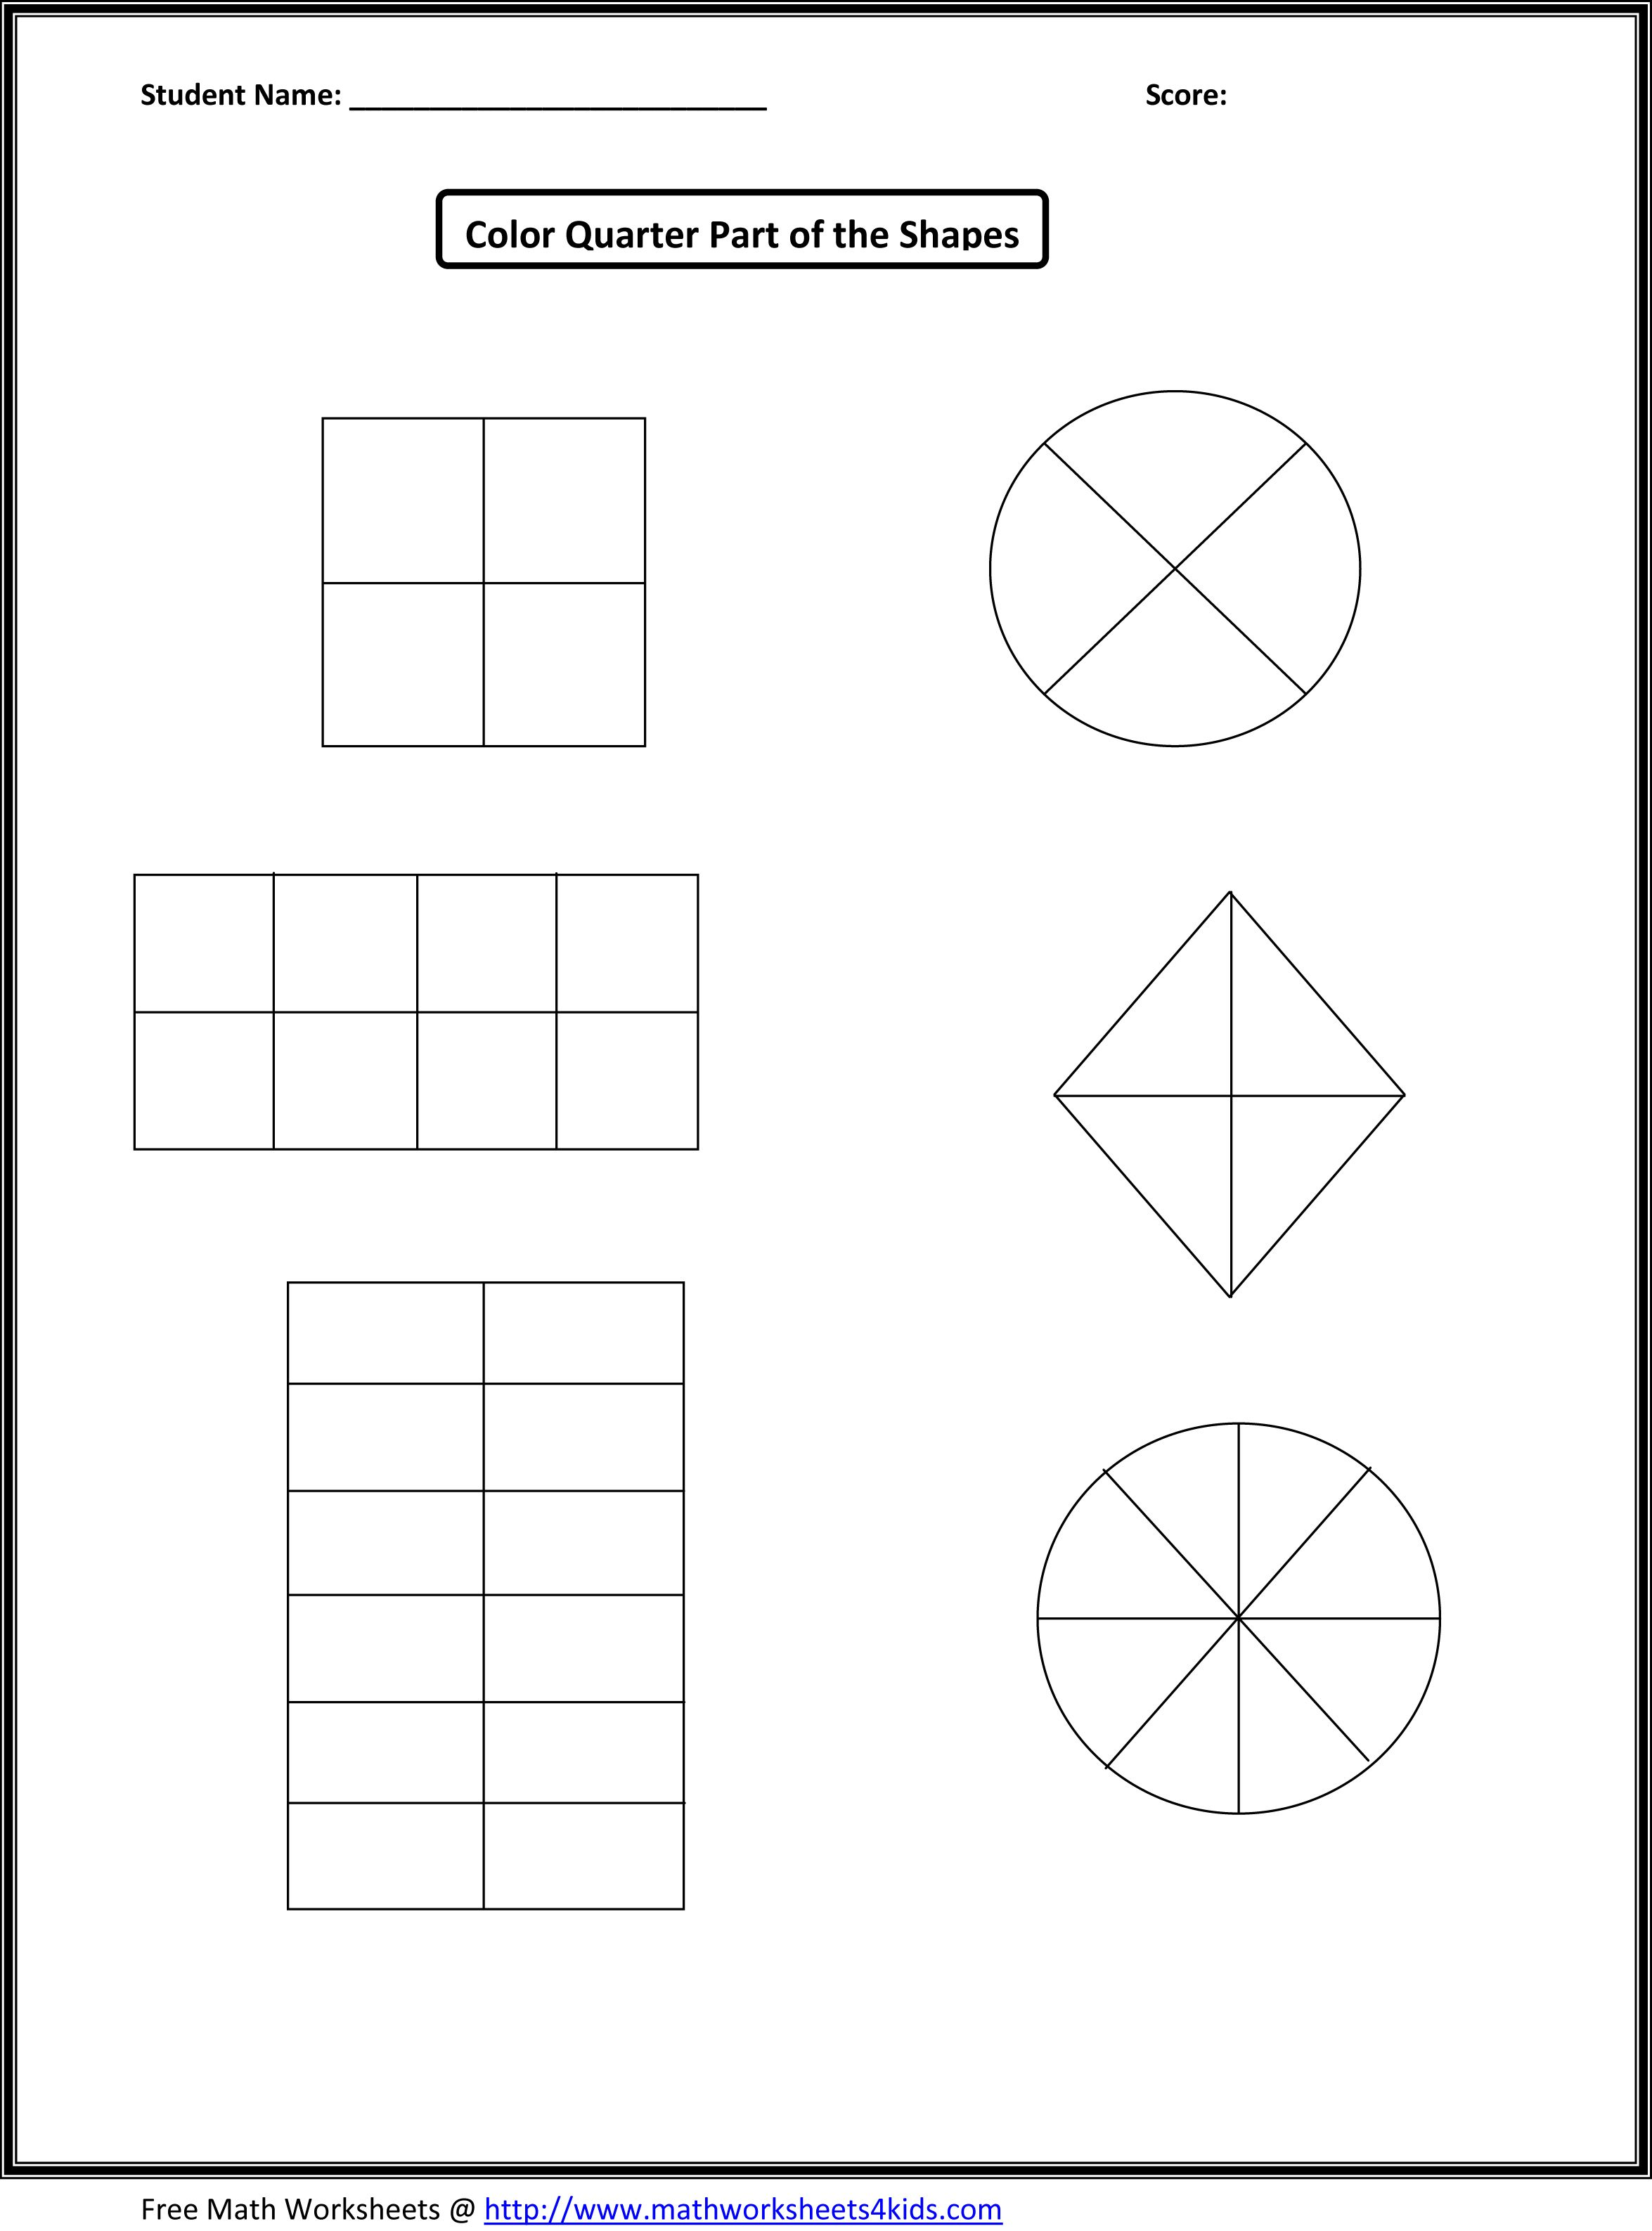 Printables Fraction Worksheets For 1st Grade 1000 images about 1st grade math on pinterest fact families activities and first math